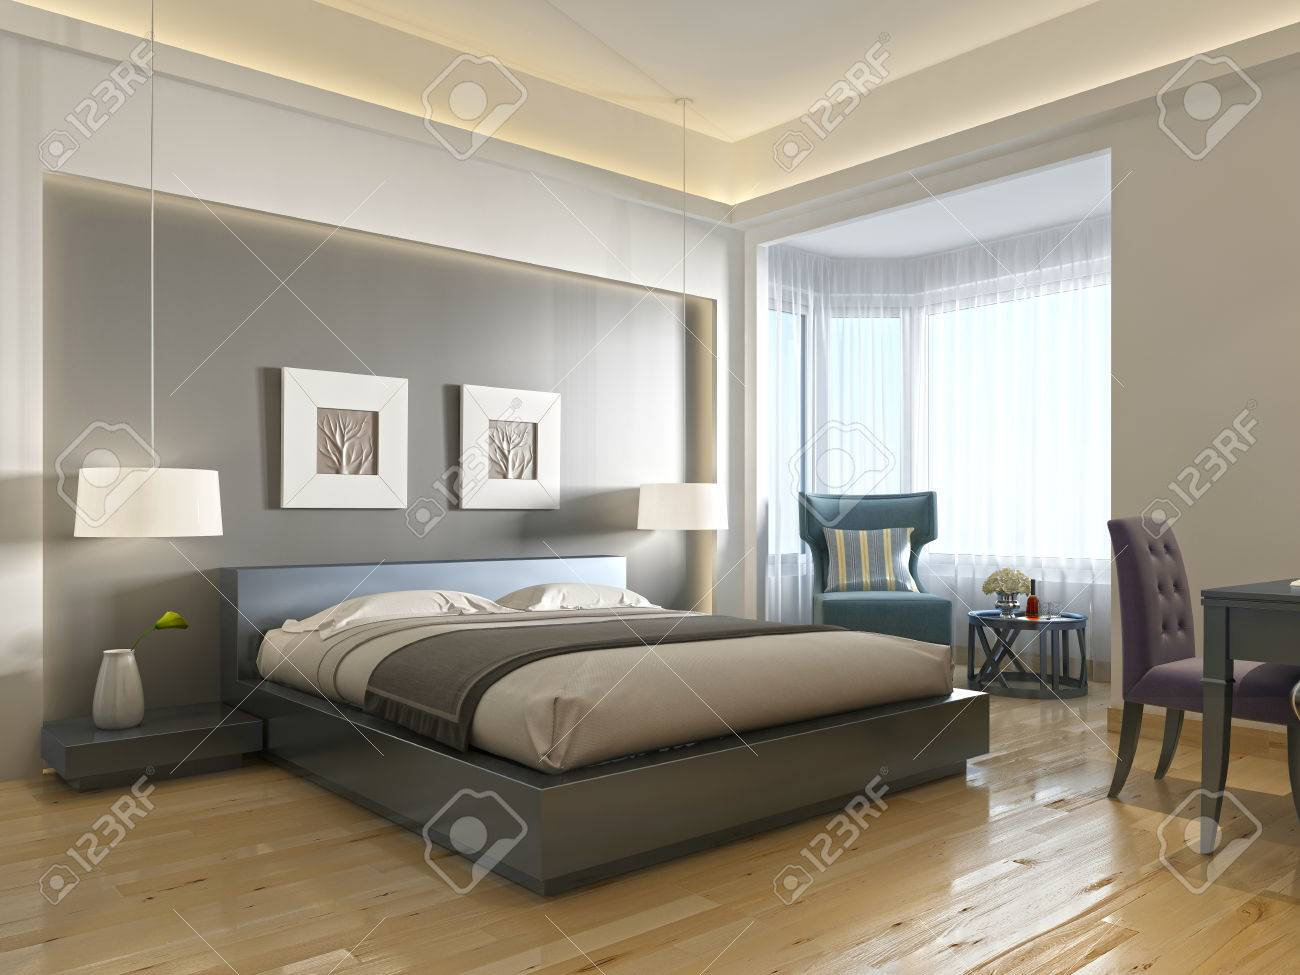 Modern hotel room with large bed, contemporary style with elements..